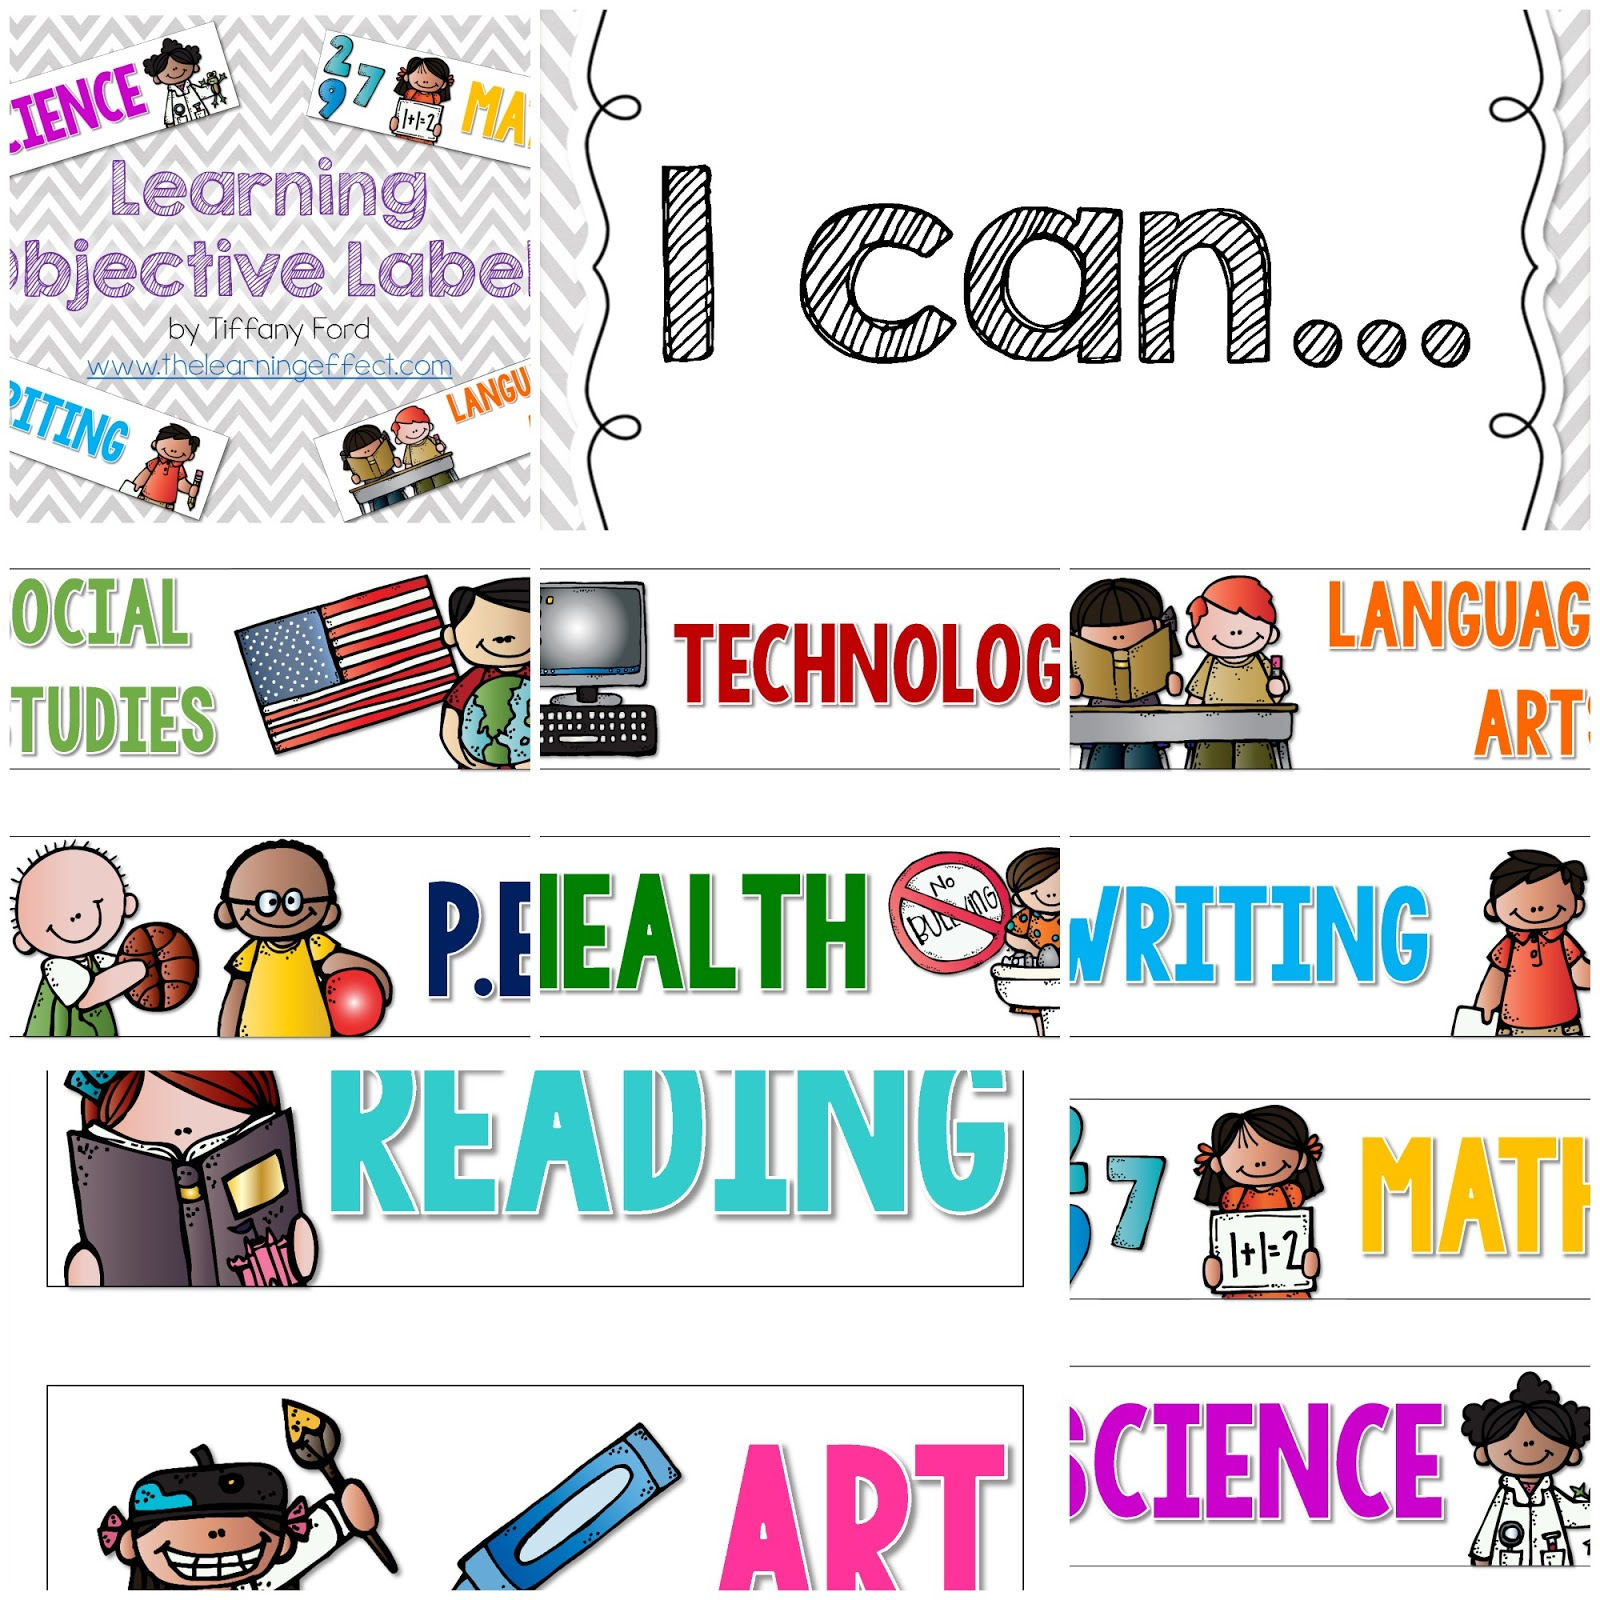 http://www.teacherspayteachers.com/Product/Learning-Objective-Labels-269810